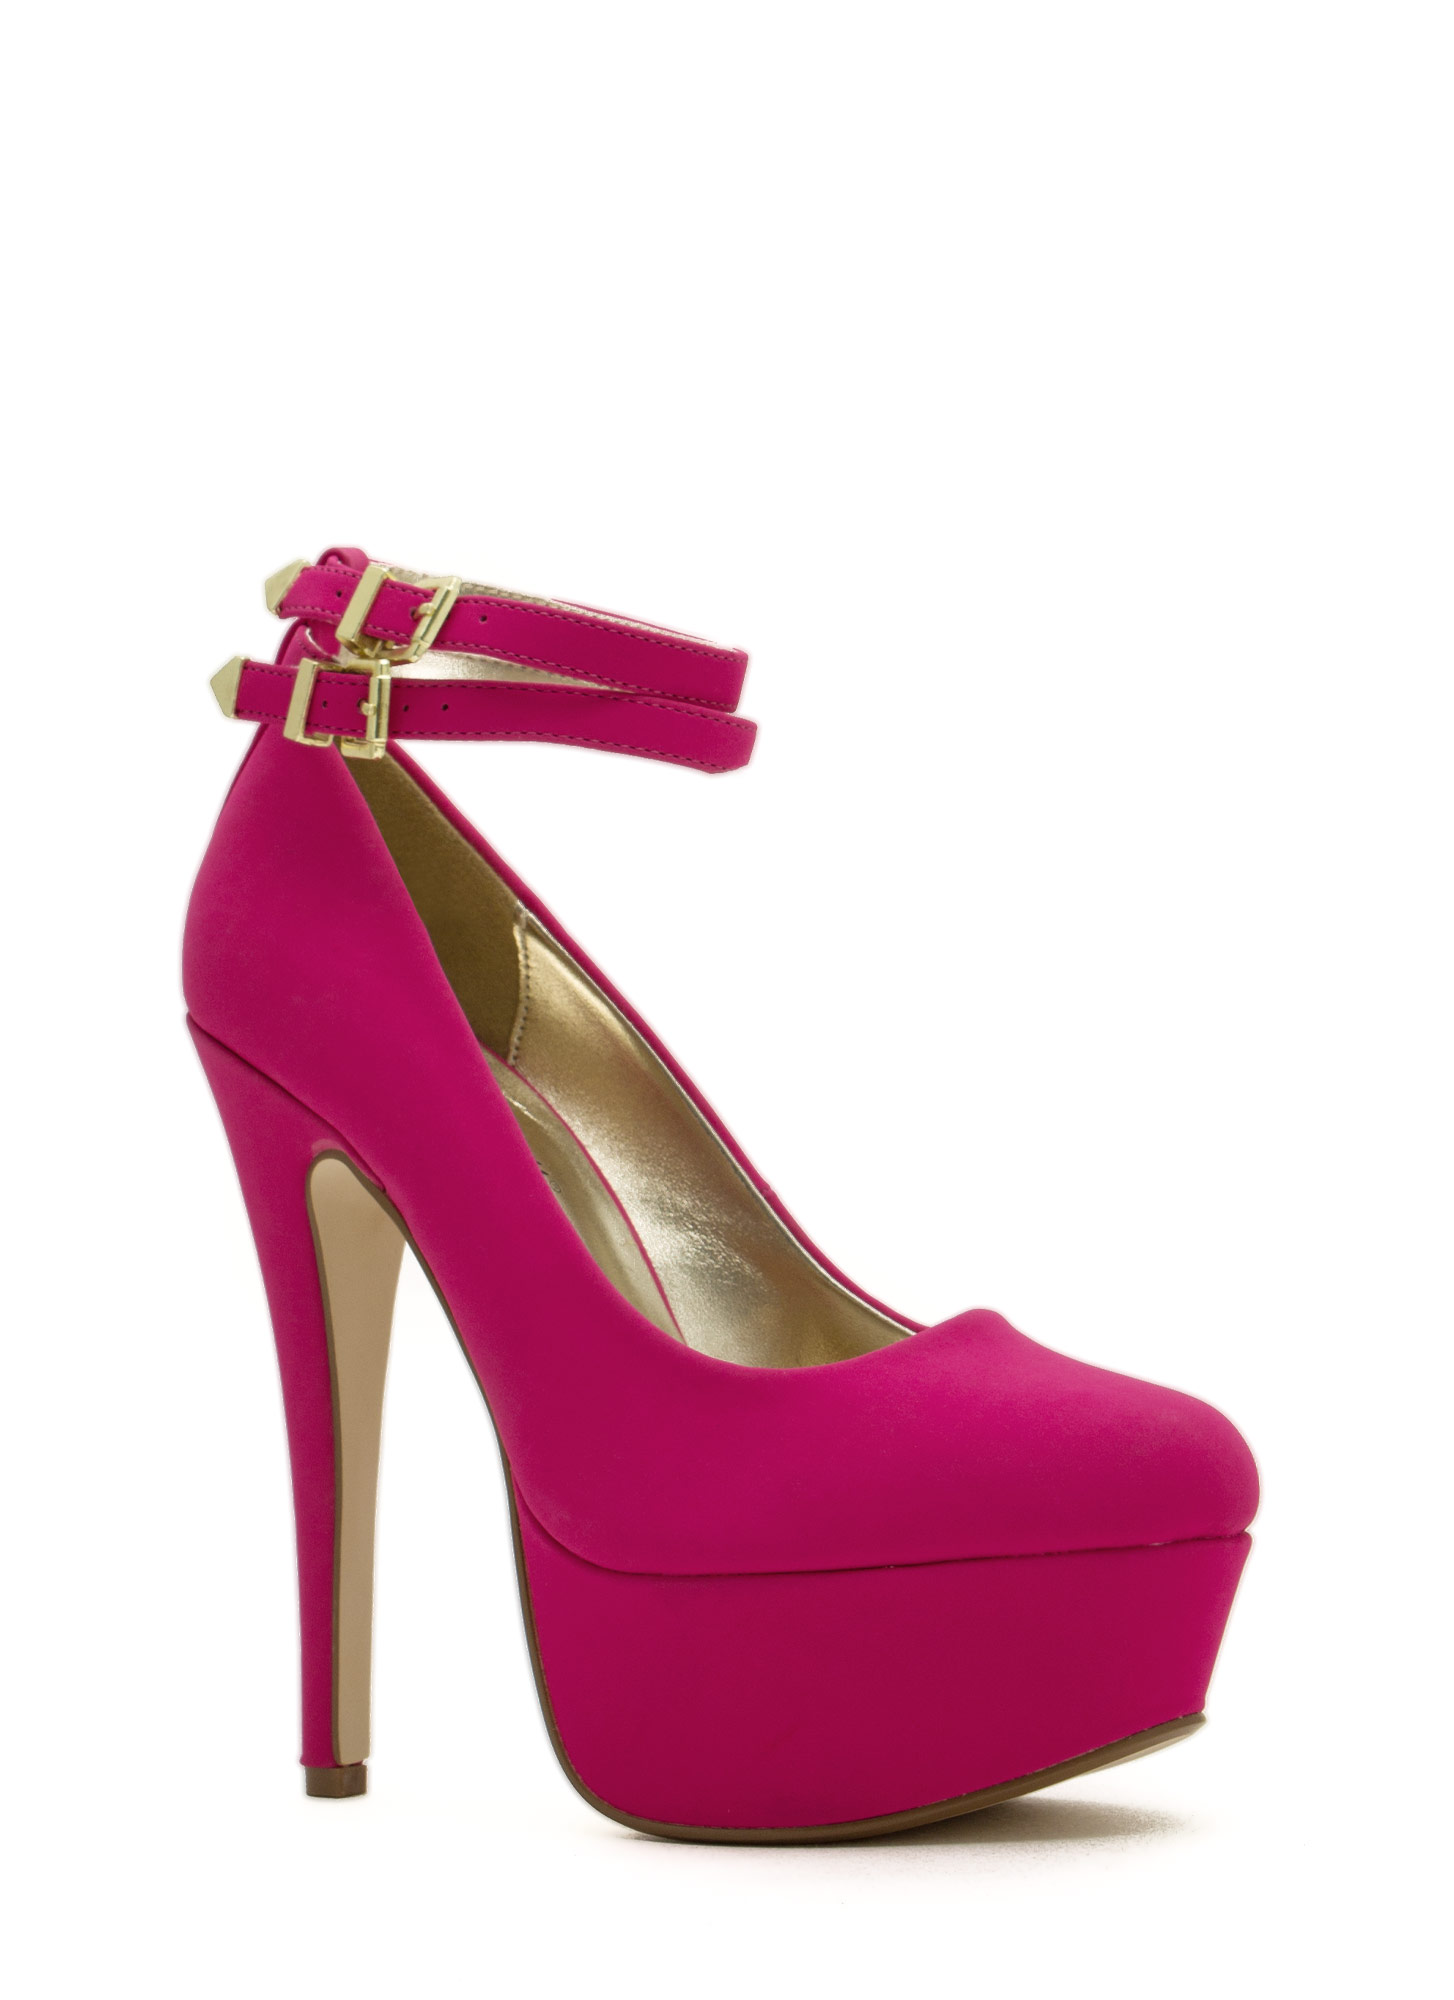 Twice As Nice Buckled Platforms MAGENTA